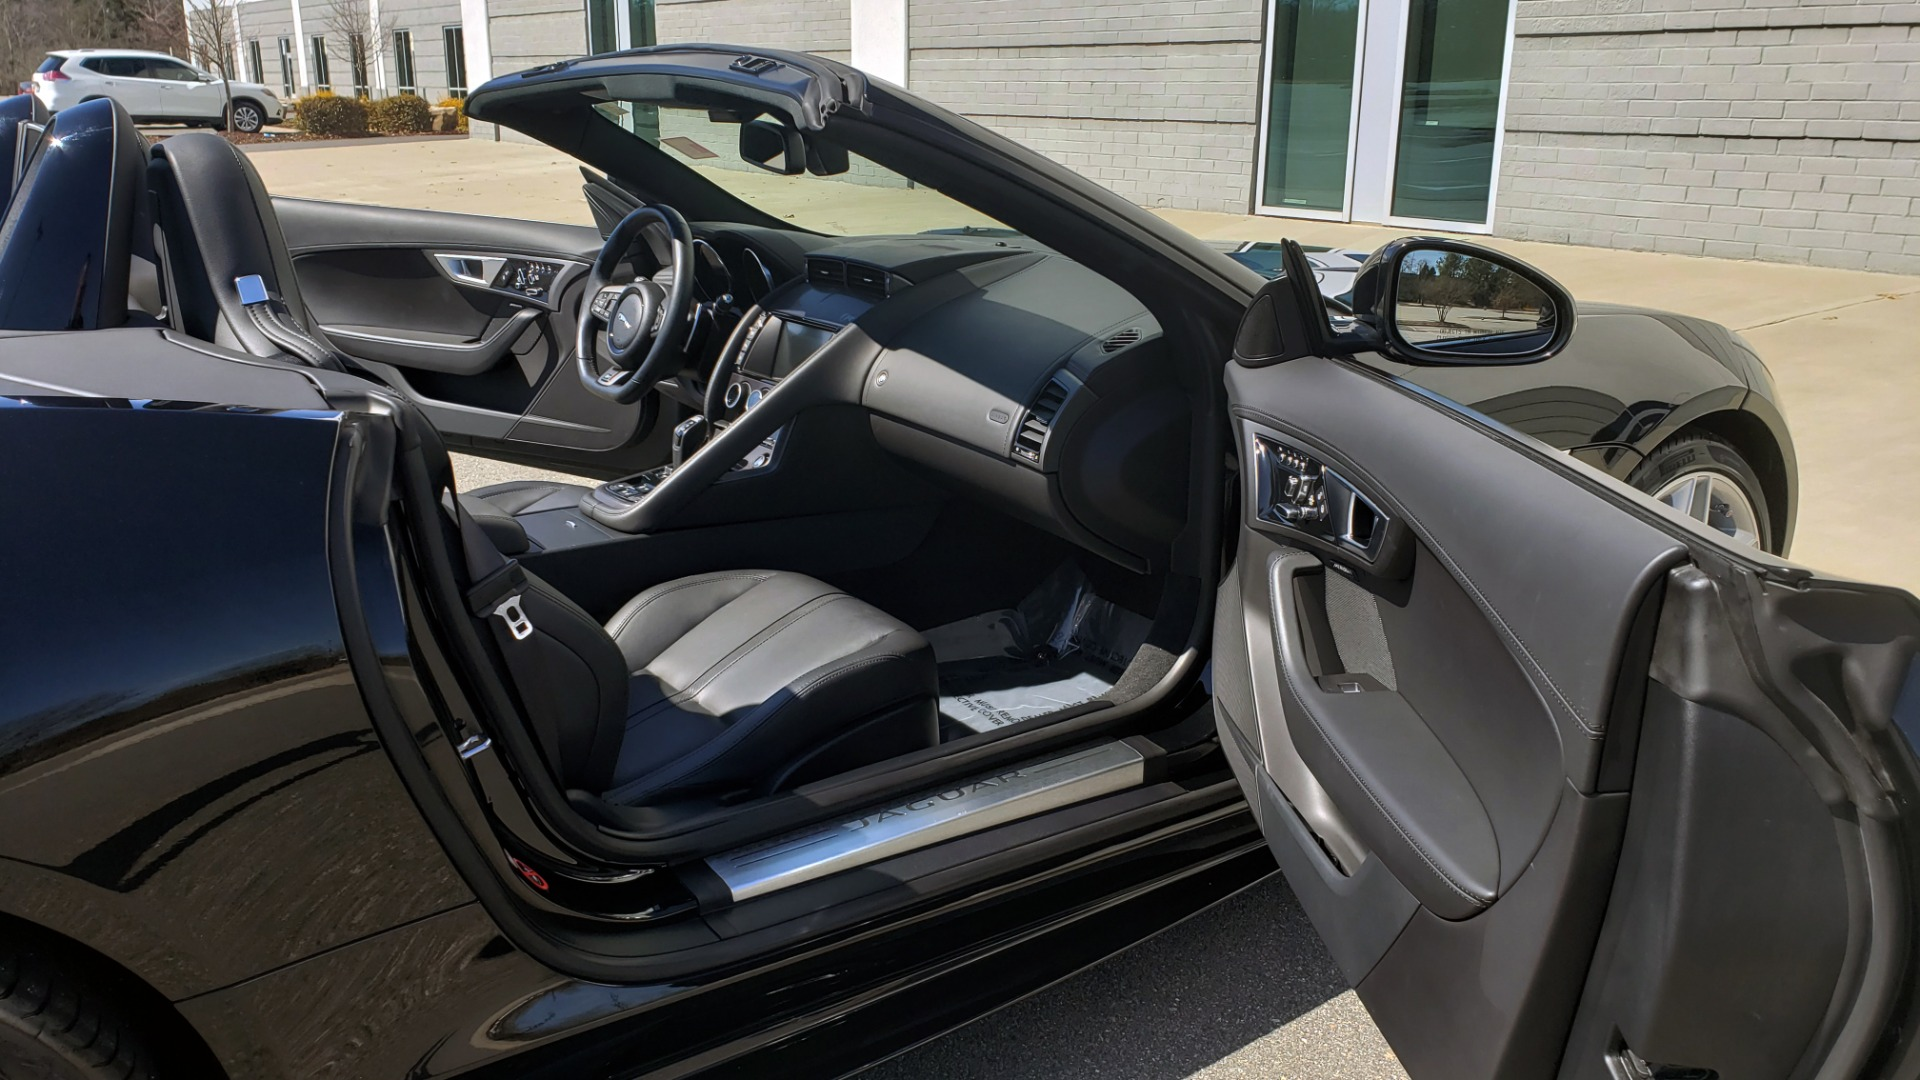 Used 2016 Jaguar F-TYPE R CONVERTIBLE / SC 5.0L 550HP / VISION PACK 3 / BSM / REARVIEW for sale $63,000 at Formula Imports in Charlotte NC 28227 81